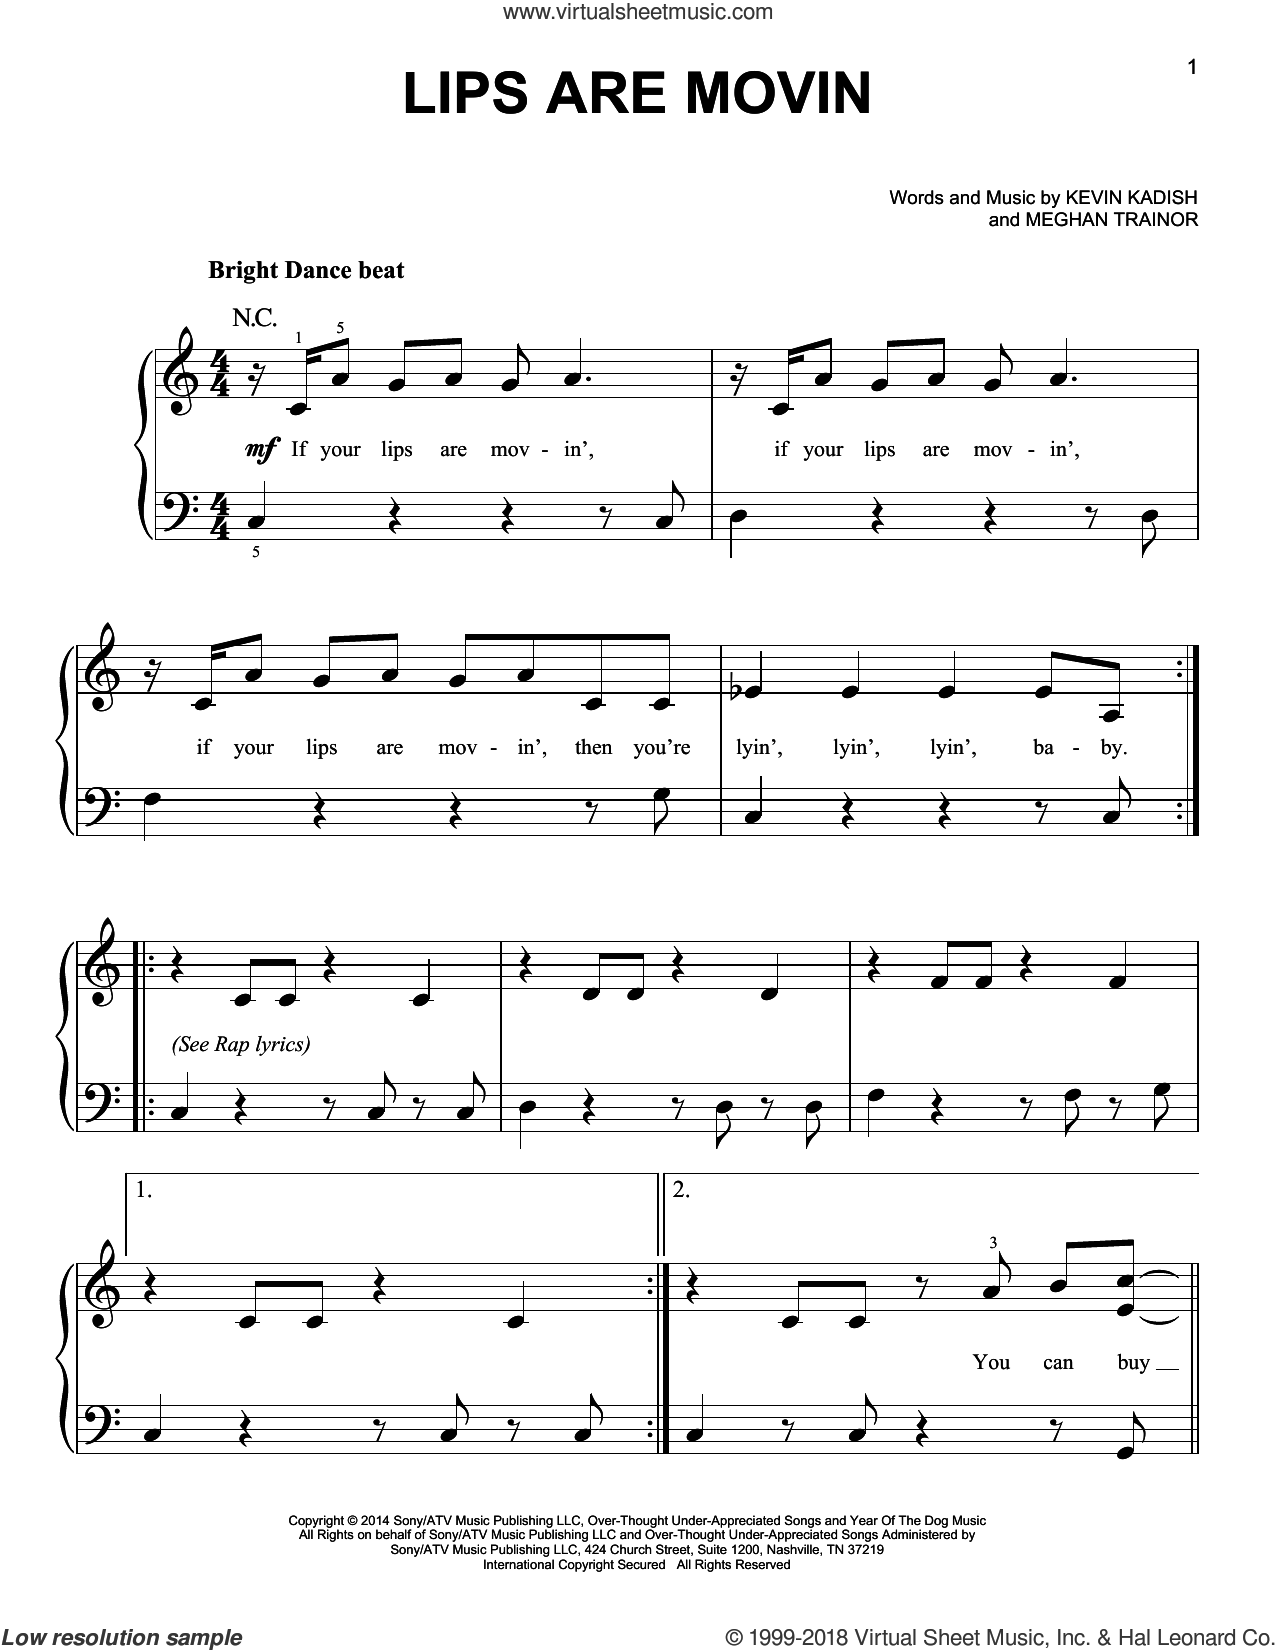 Lips Are Movin sheet music for piano solo by Kevin Kadish